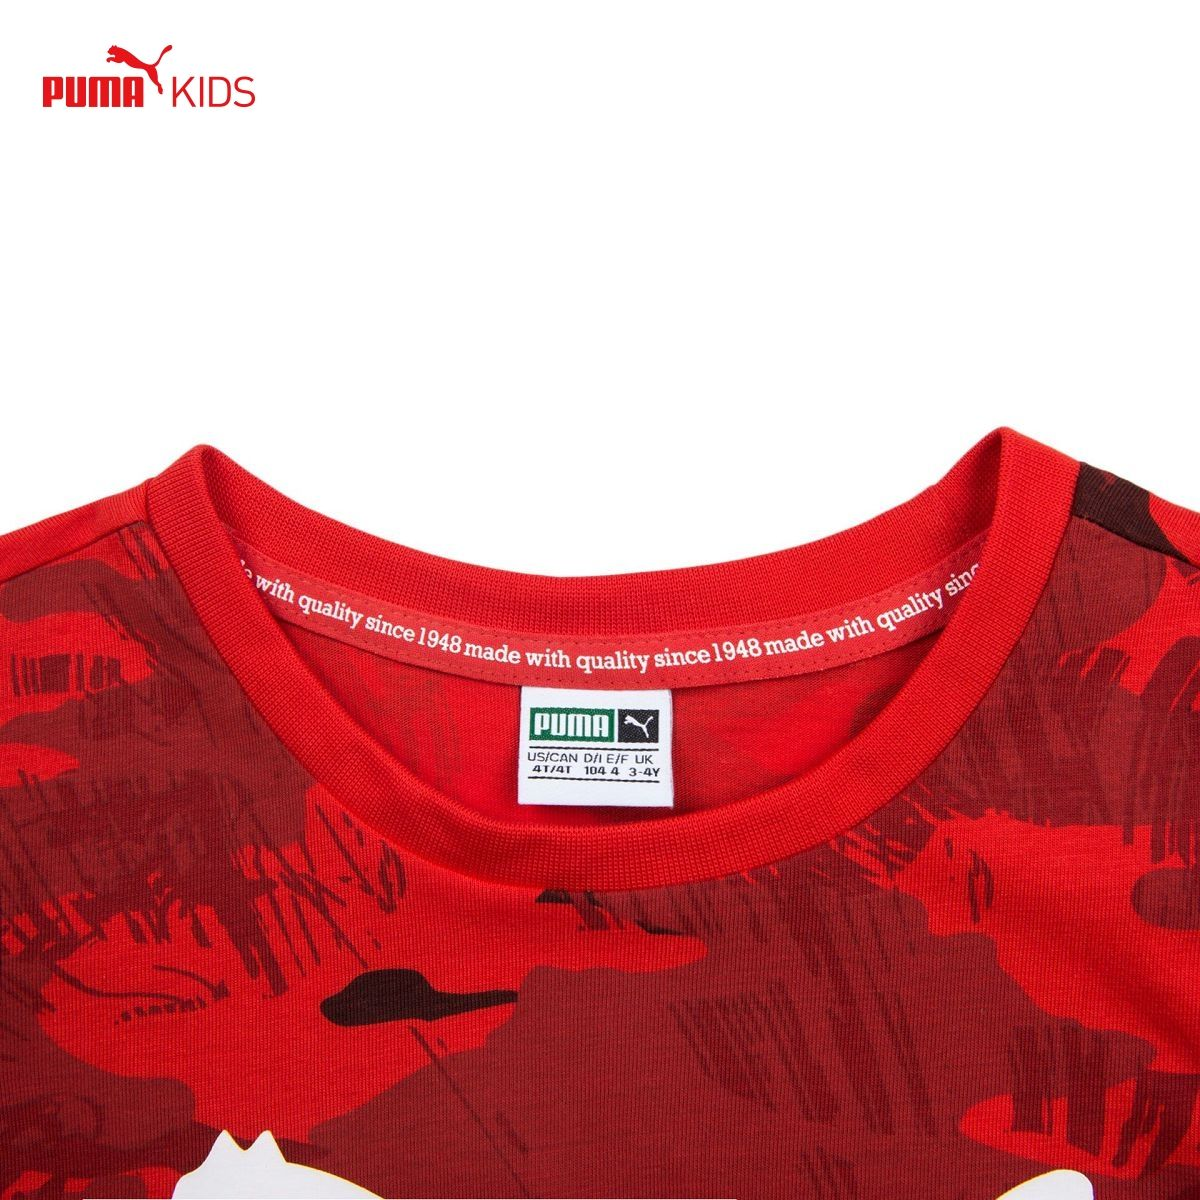 39138caf9a7 ... lightbox moreview · lightbox moreview · lightbox moreview · lightbox  moreview. PrevNext. puma Puma children s clothing 2018 spring and summer new  boy ...